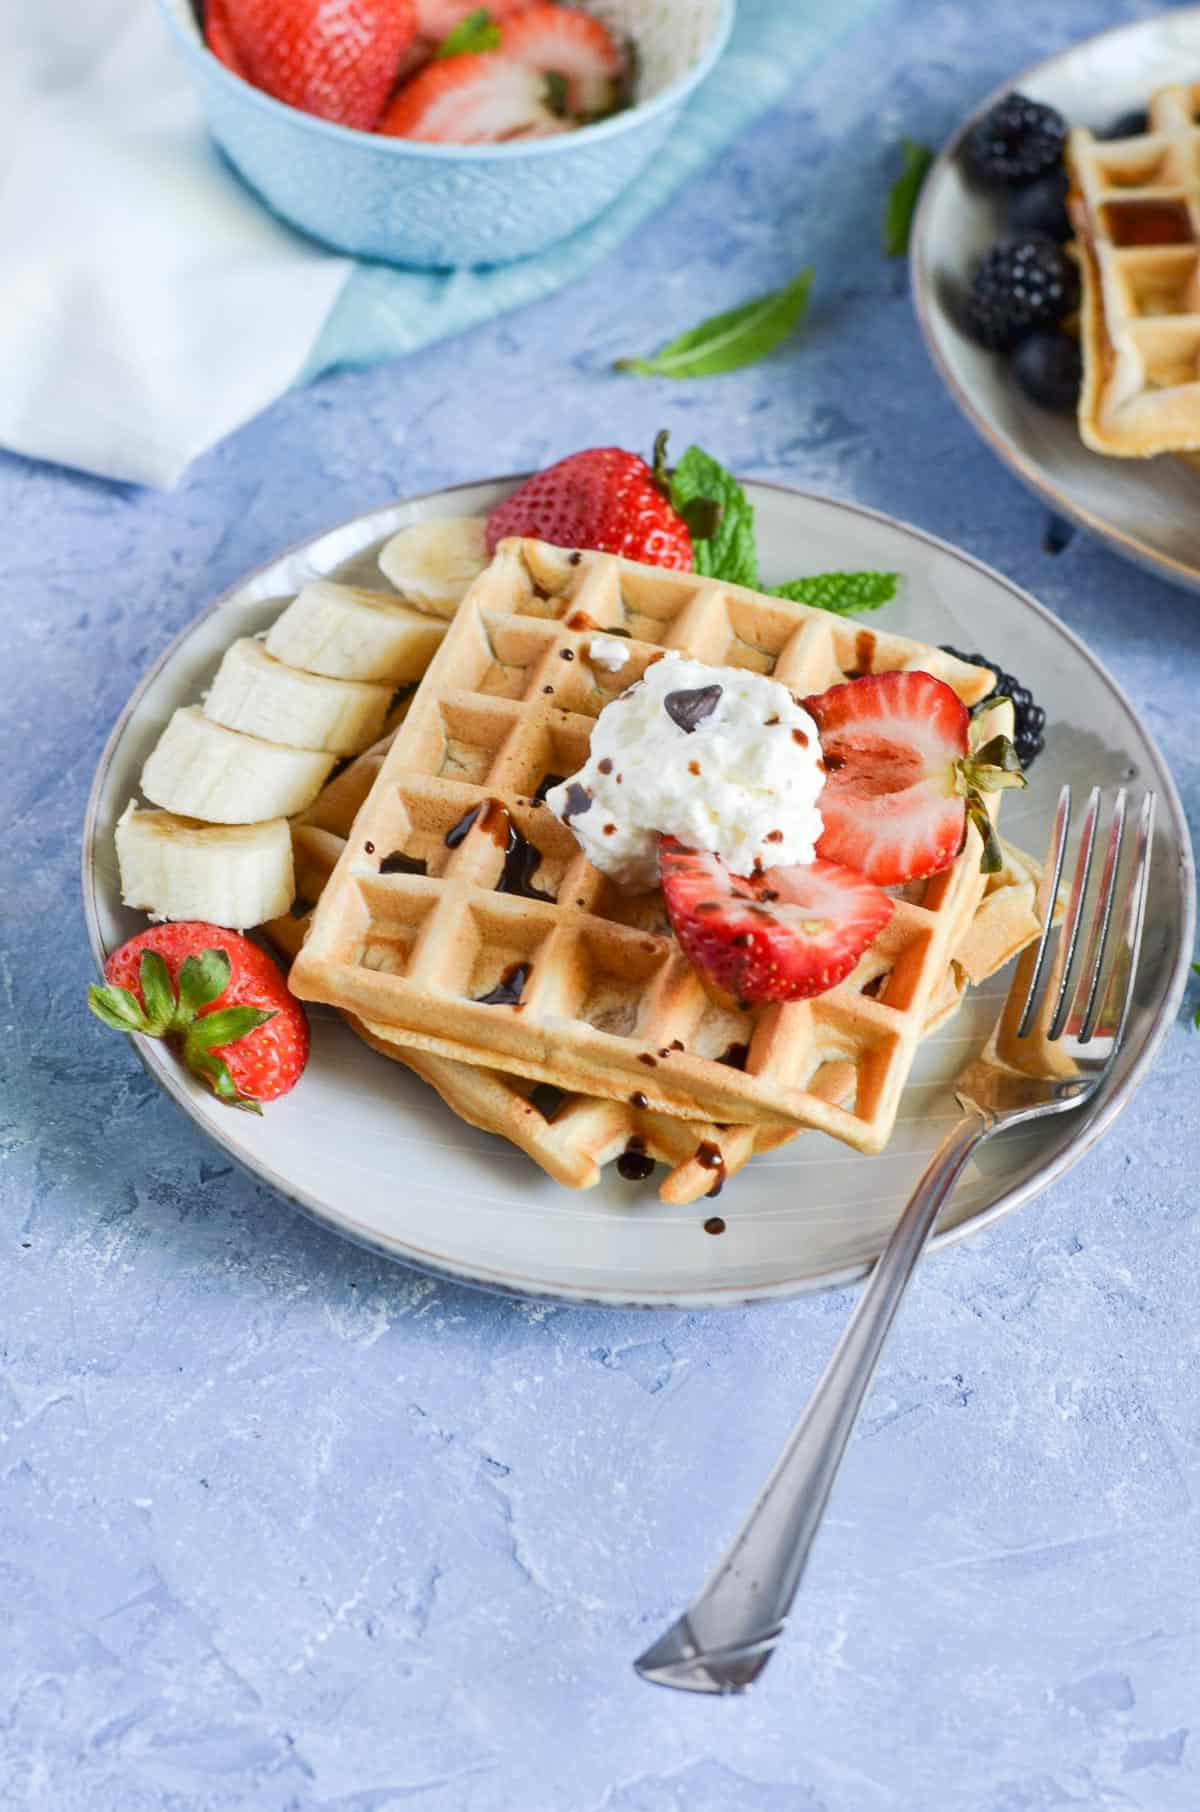 close up click of waffles served in a plate with fork.